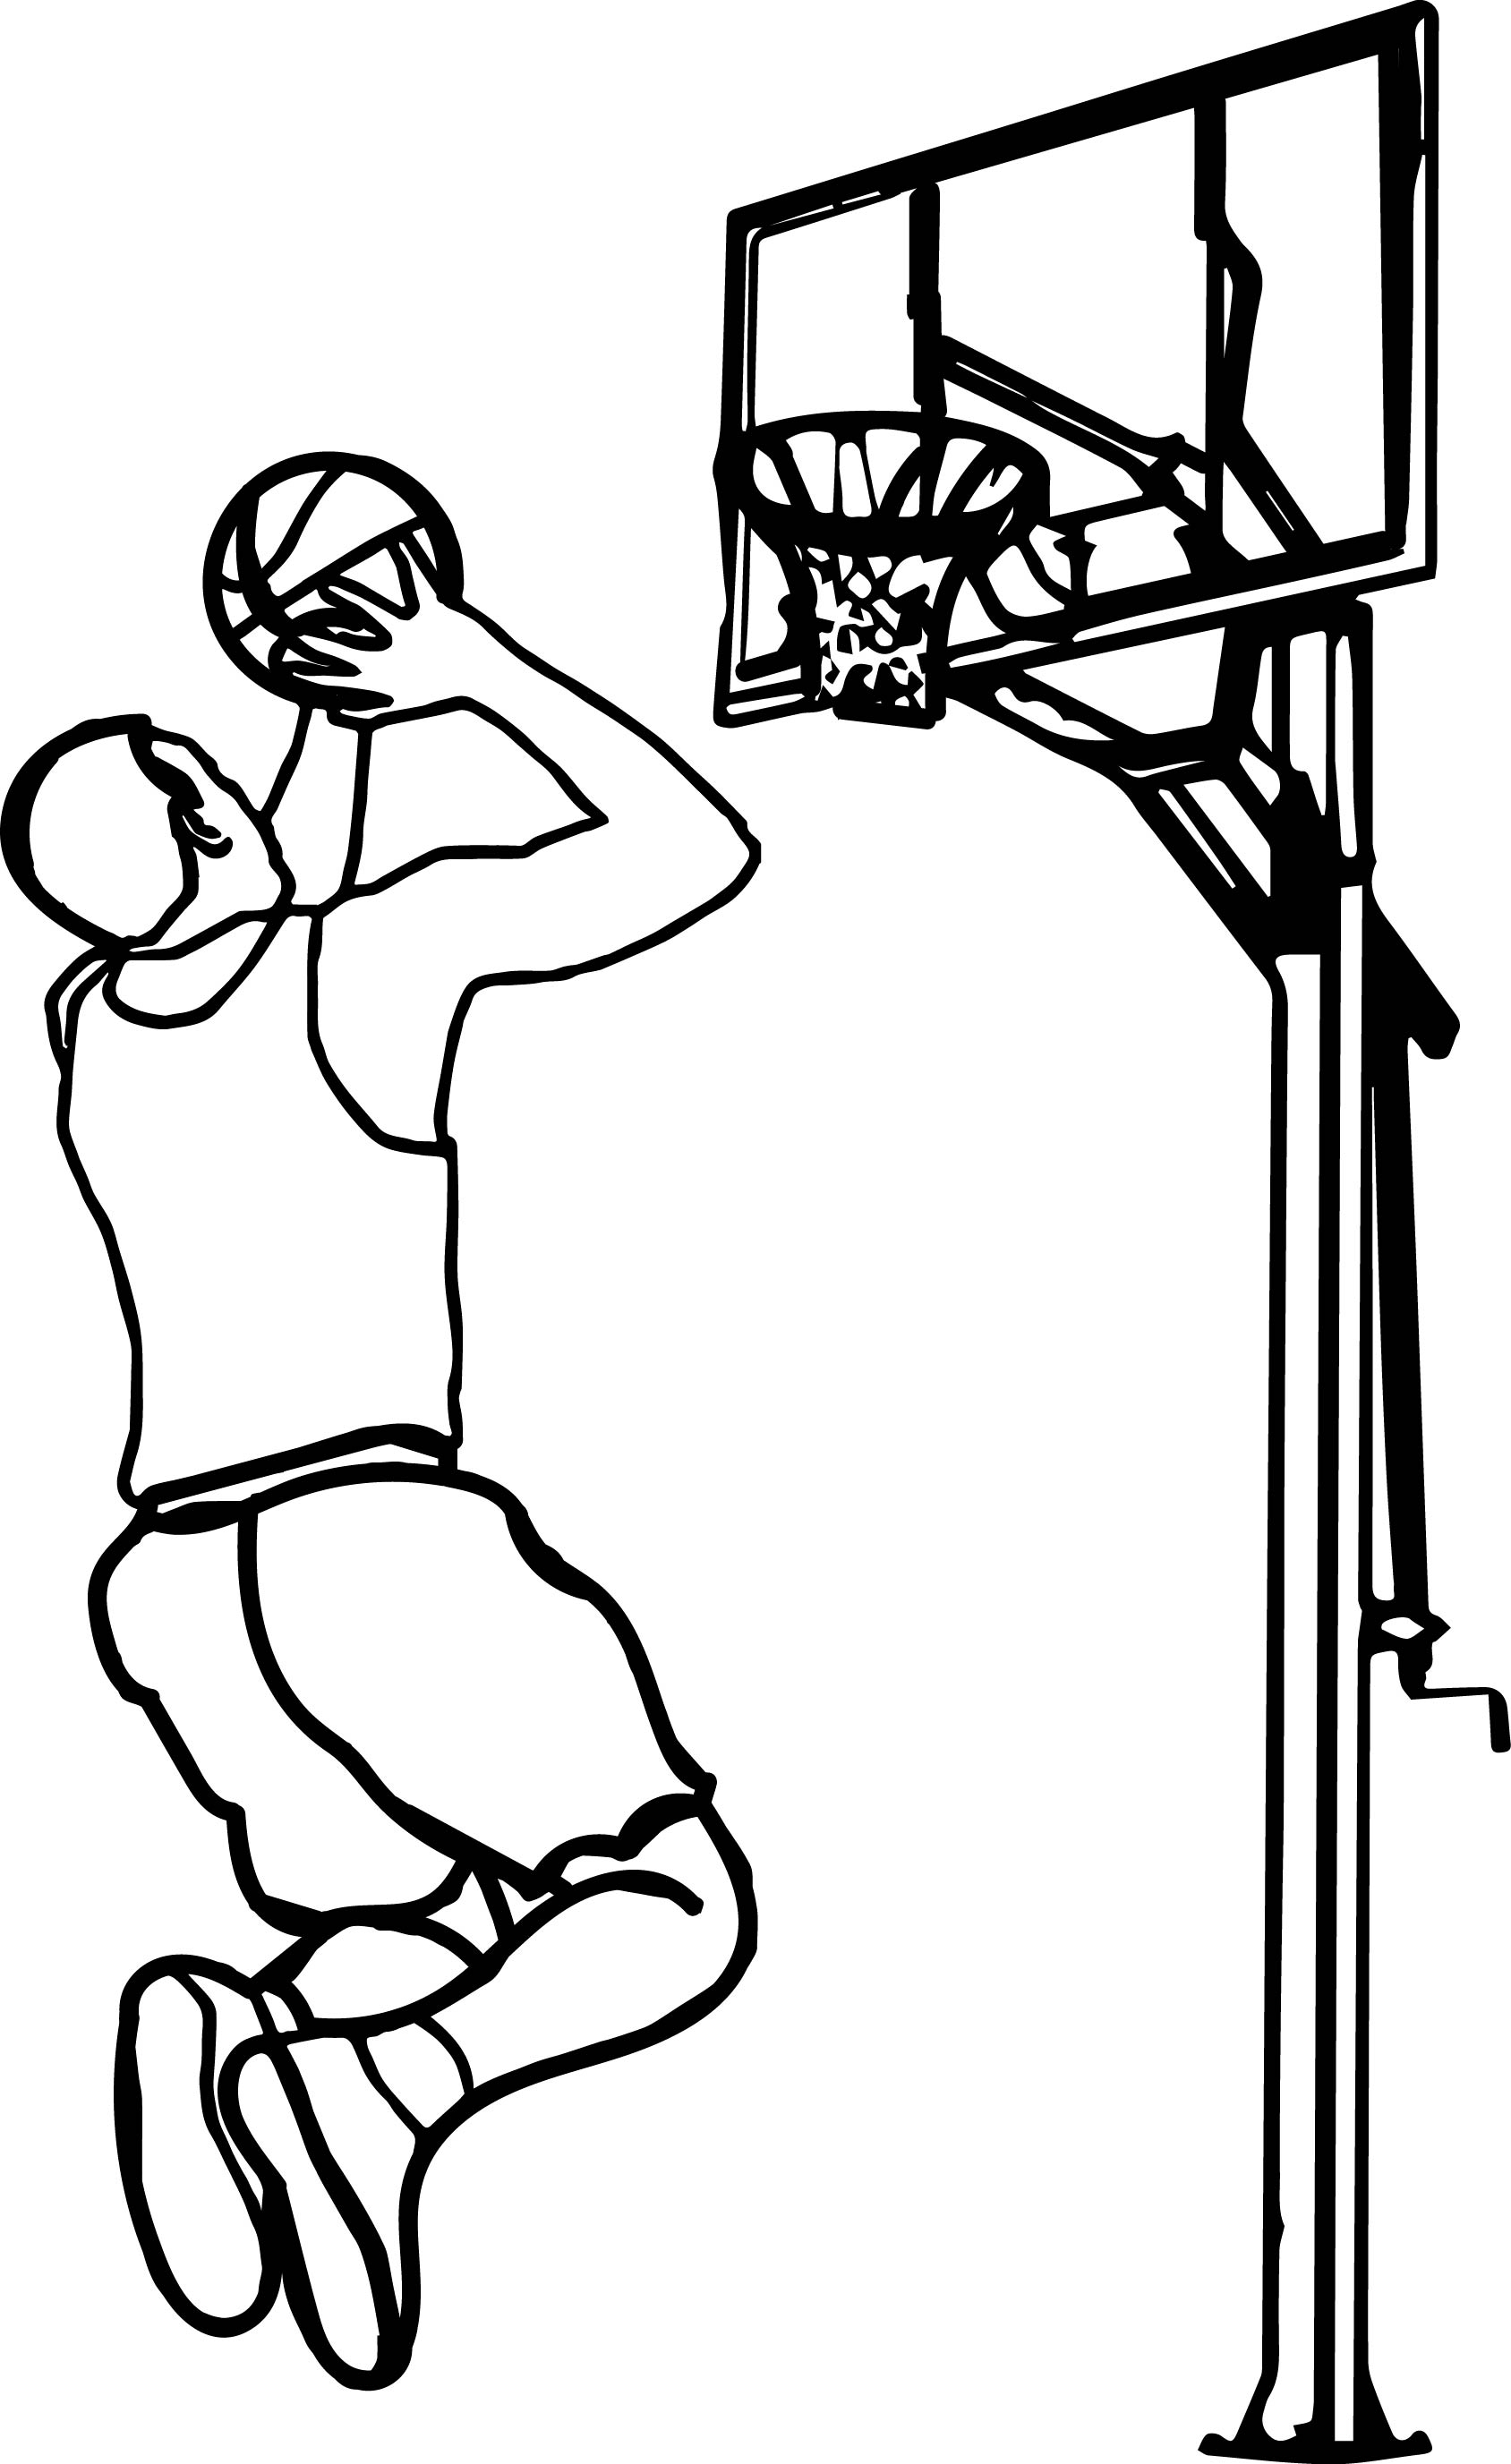 Outline Playing Basketball Clipart · Children Playing Basketball Clipart  Black And White